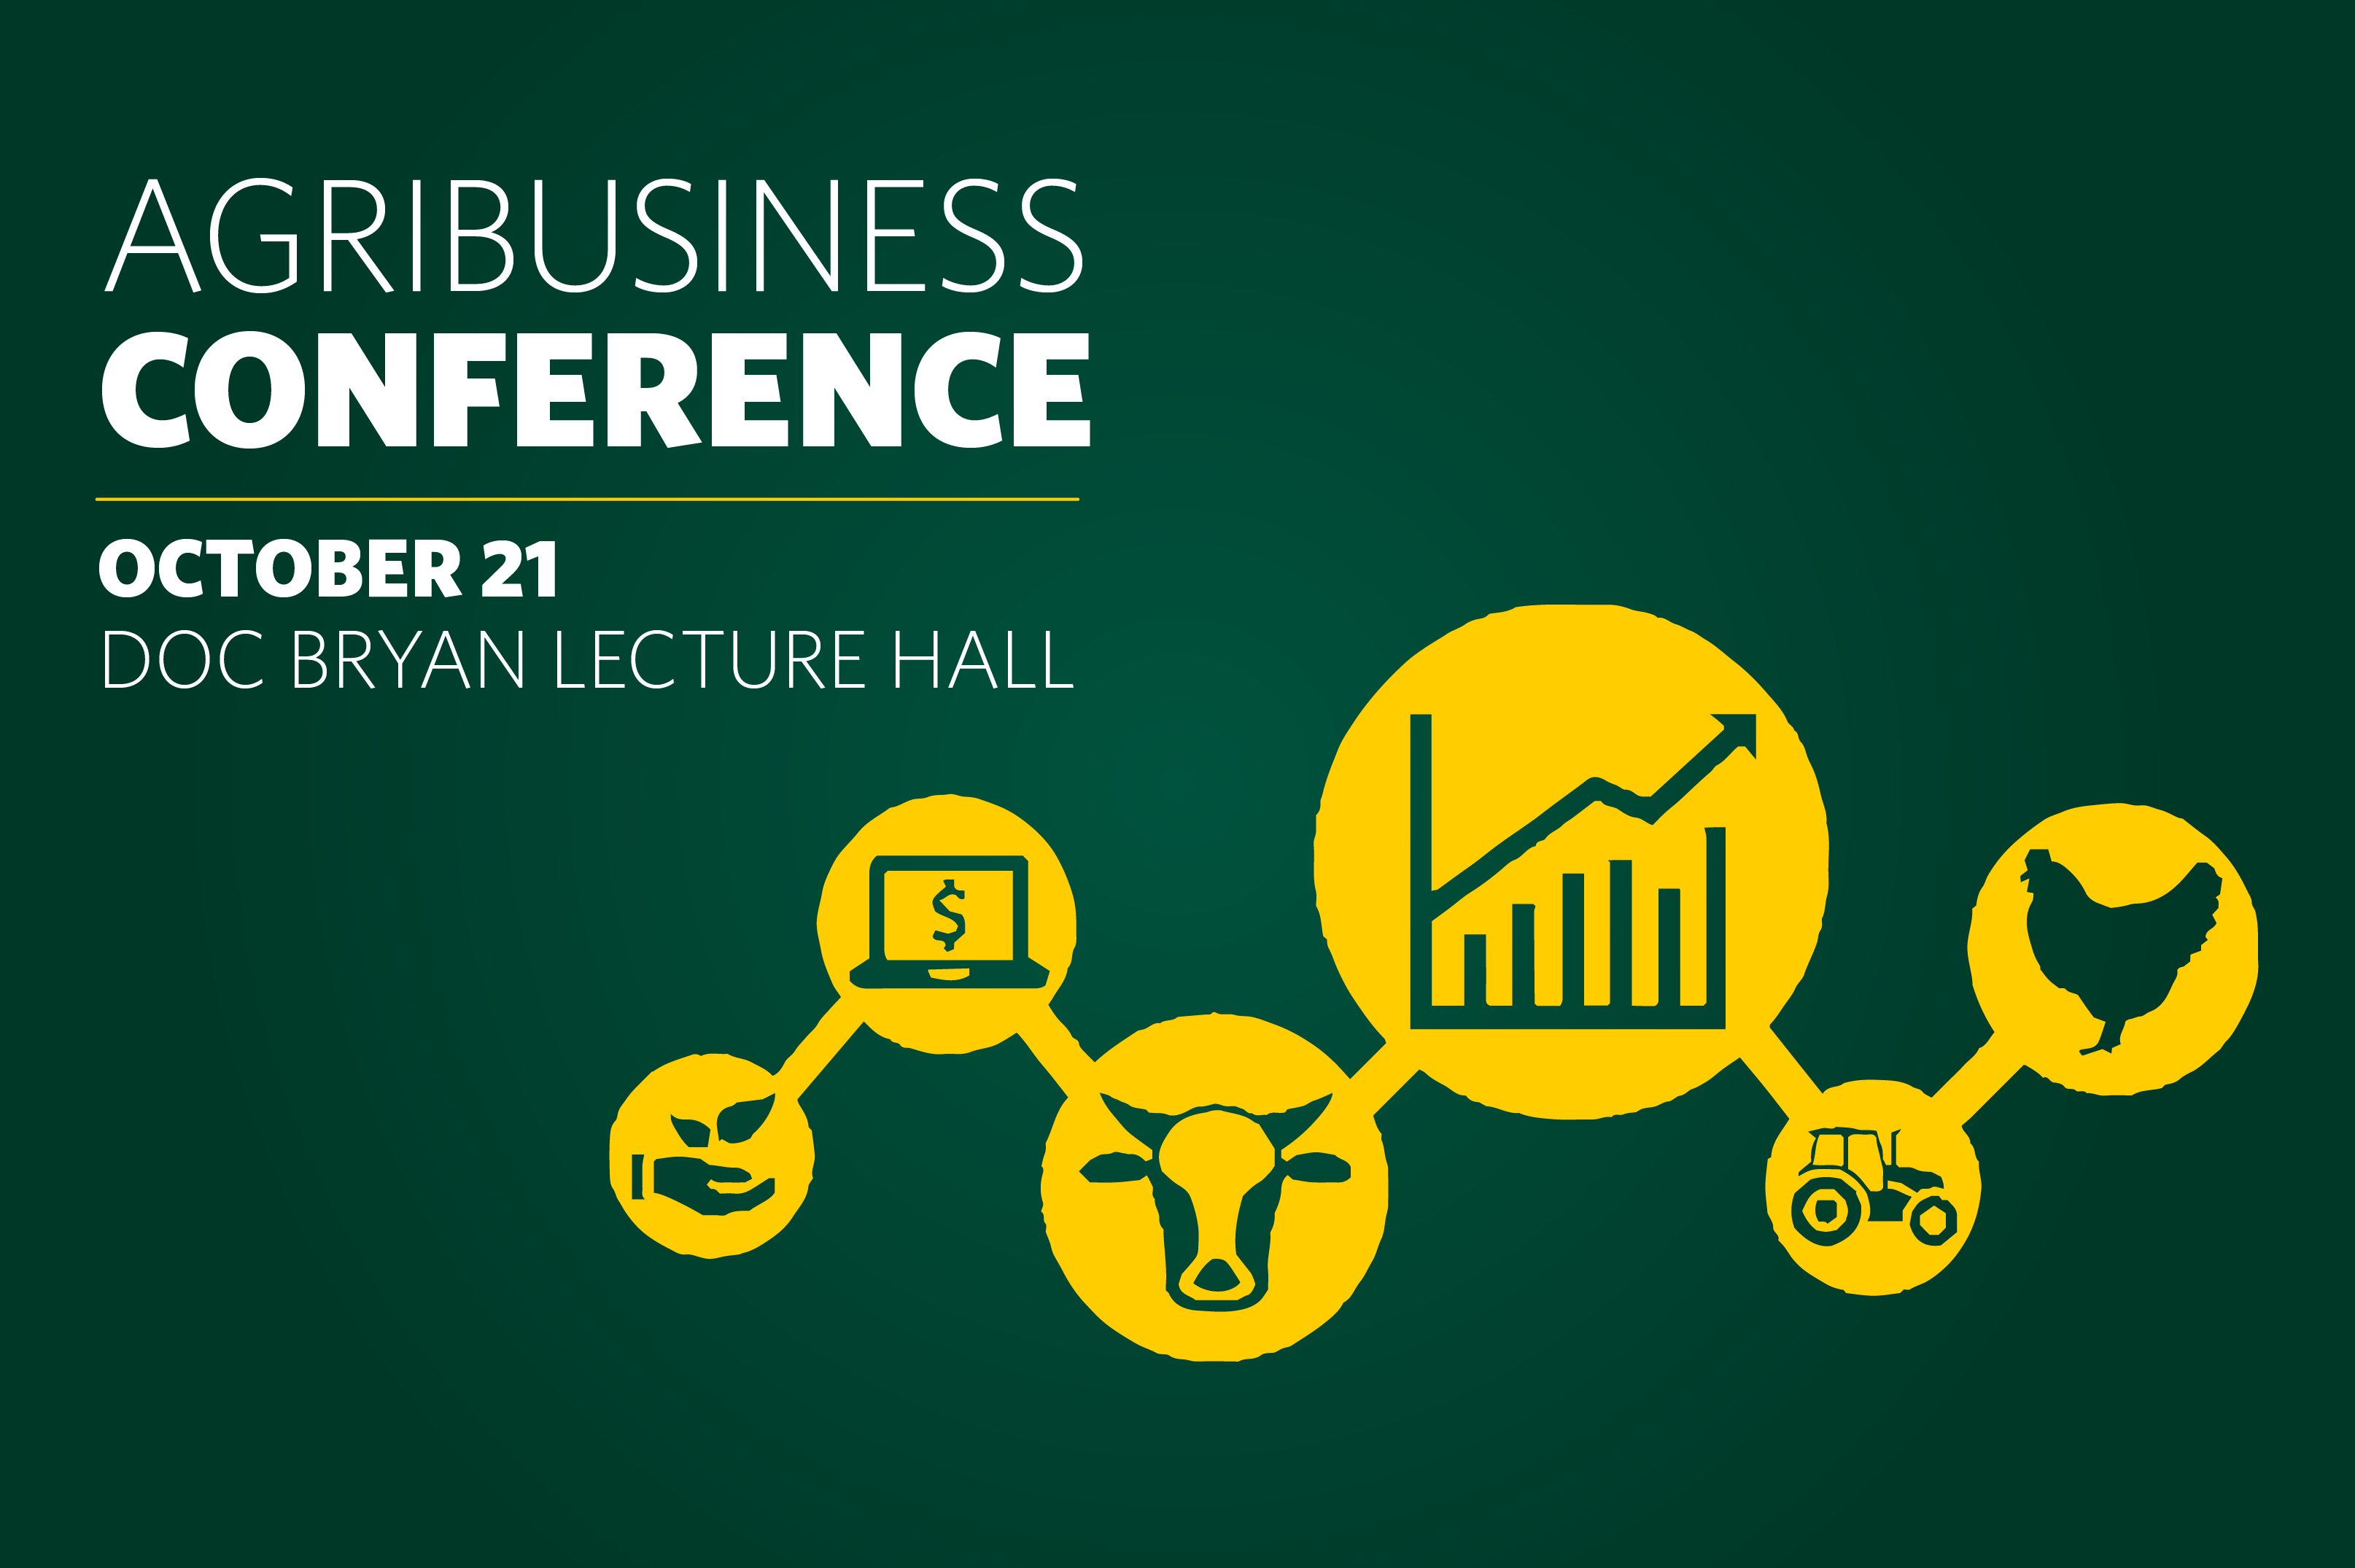 Agribusiness Conference